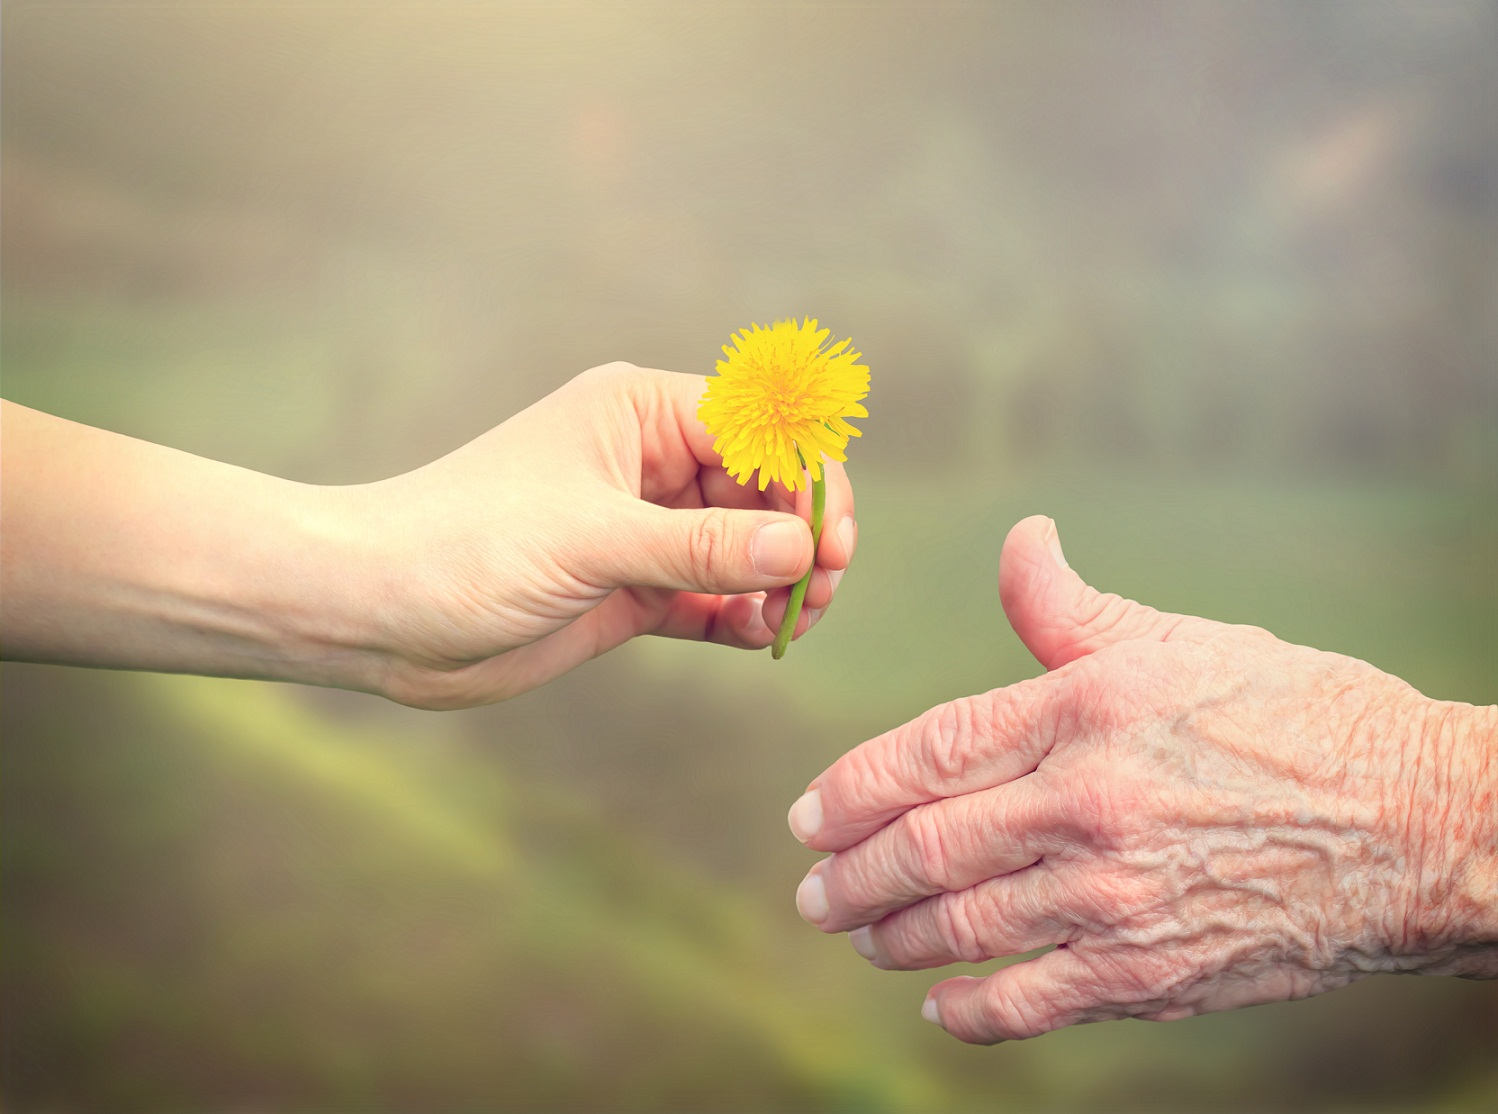 handing a flower to an older woman